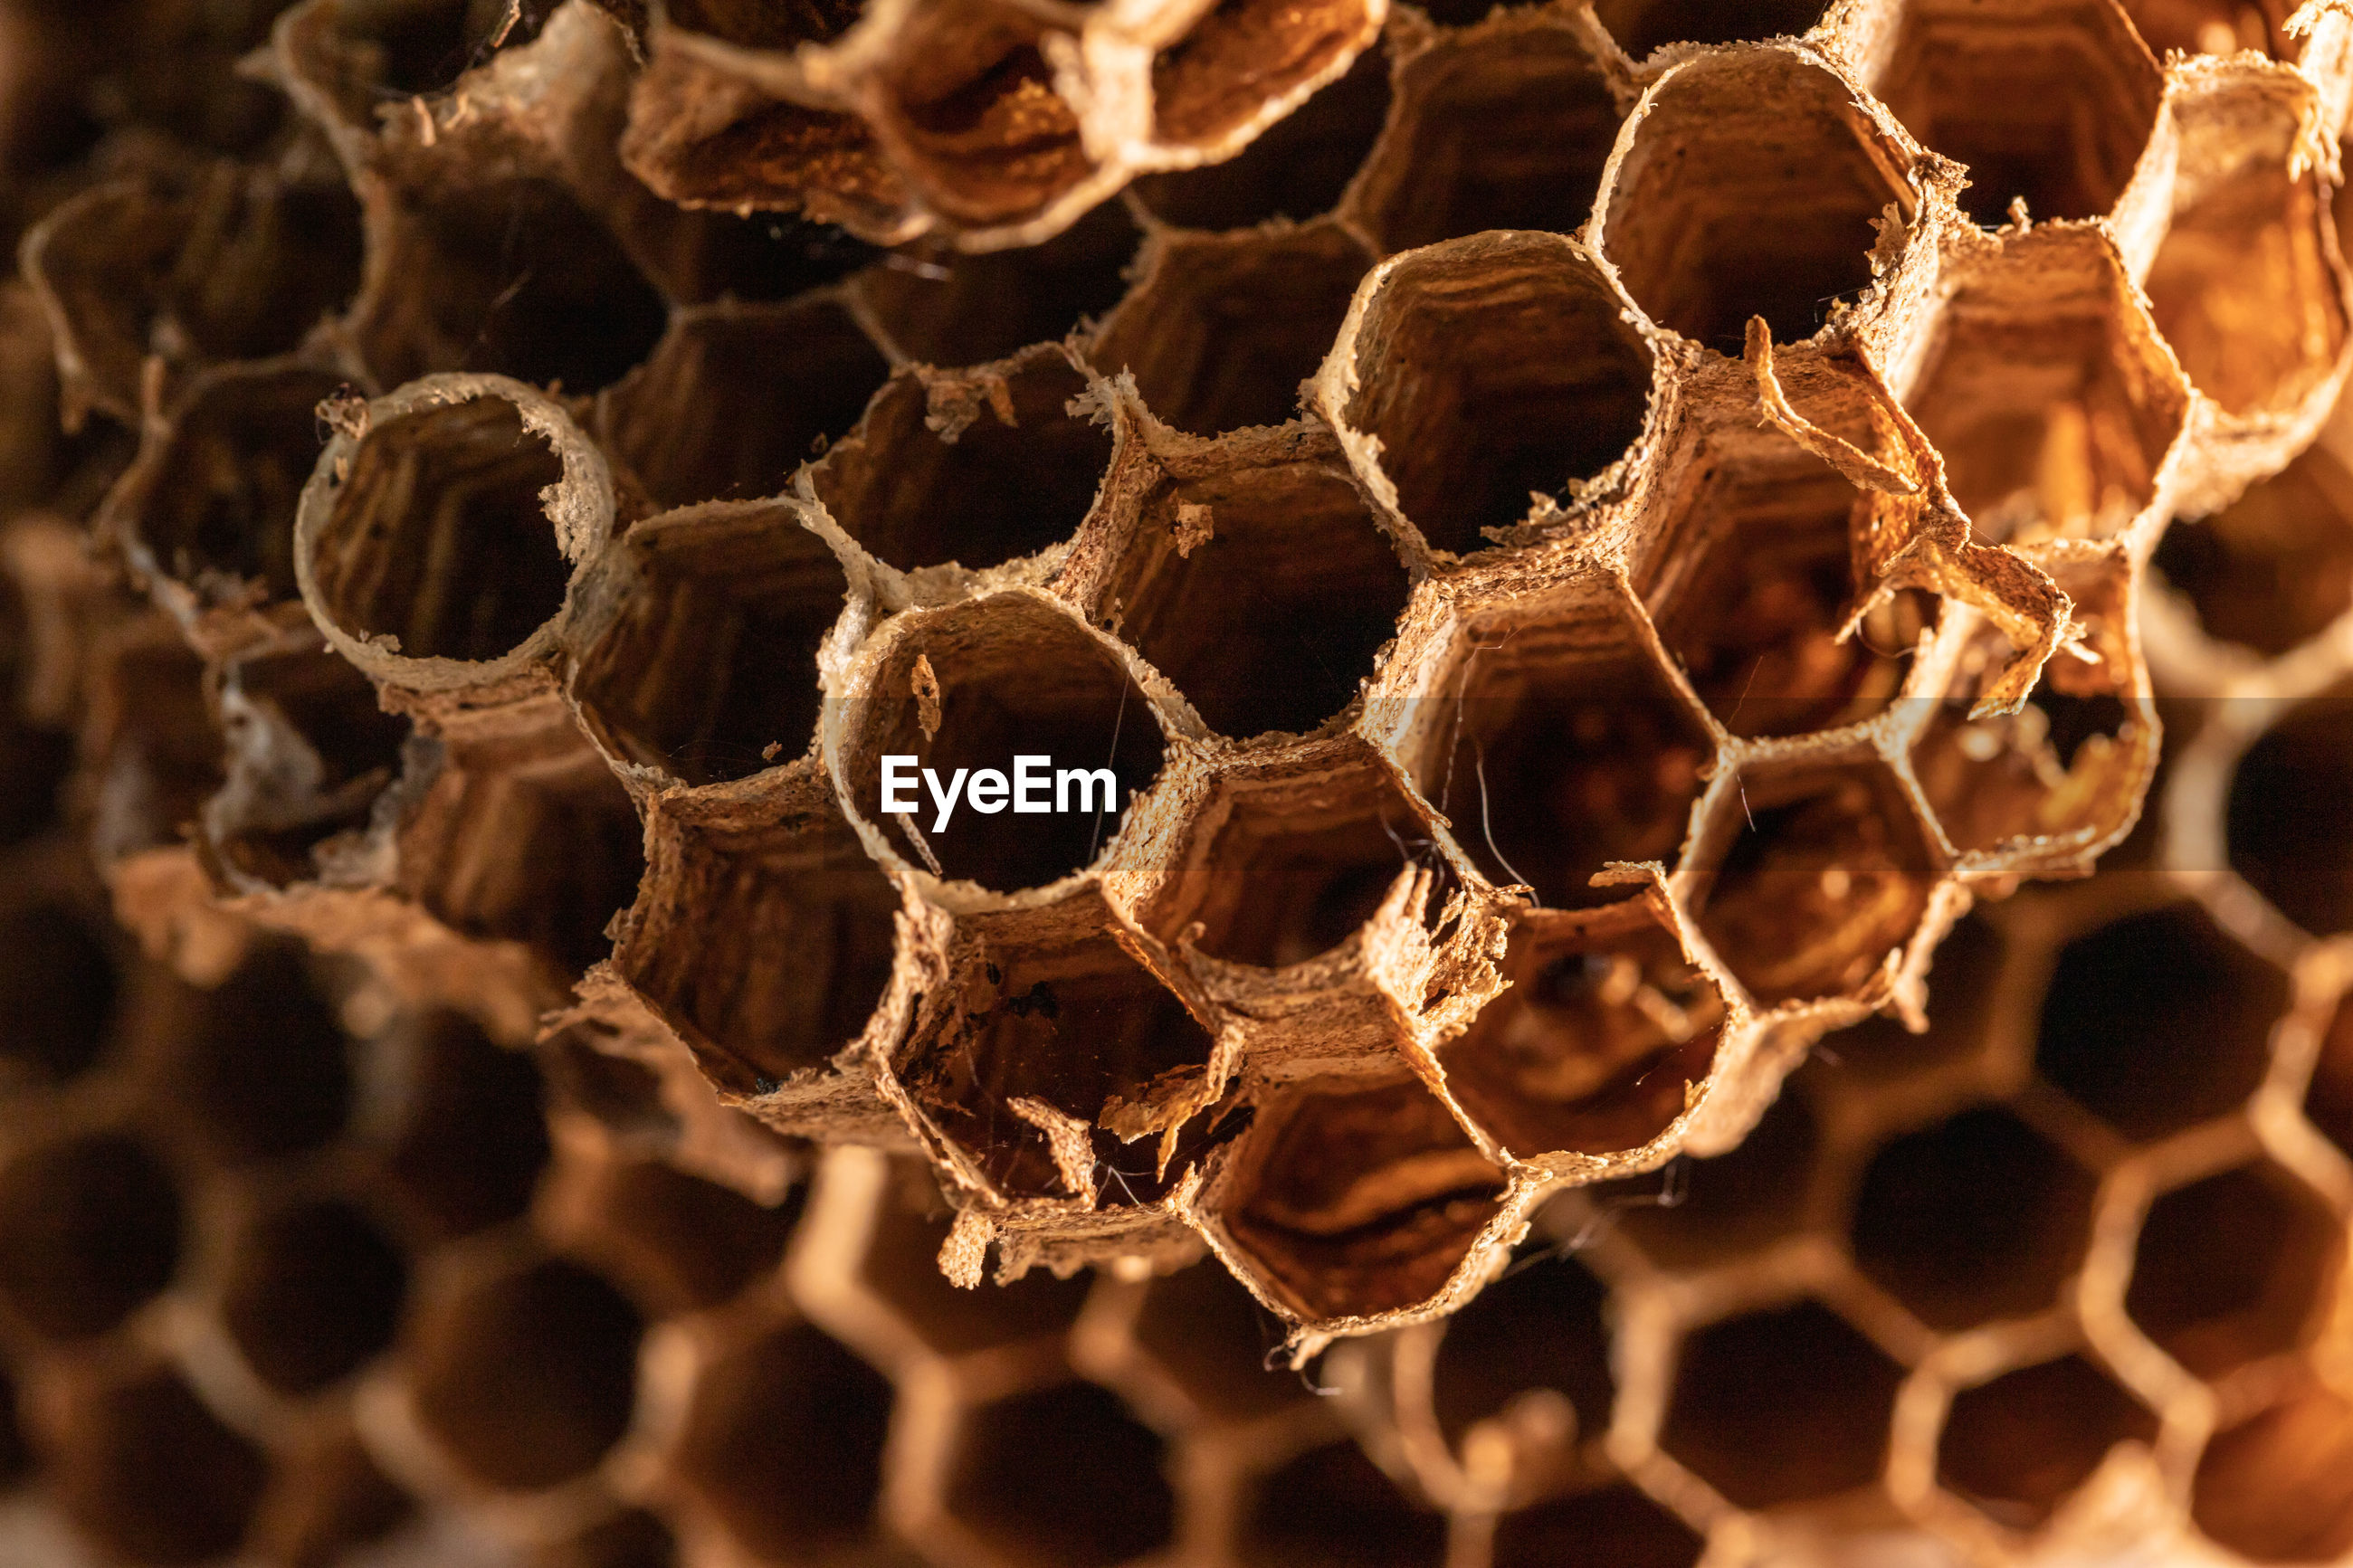 CLOSE-UP OF BEE ON THE FLOOR